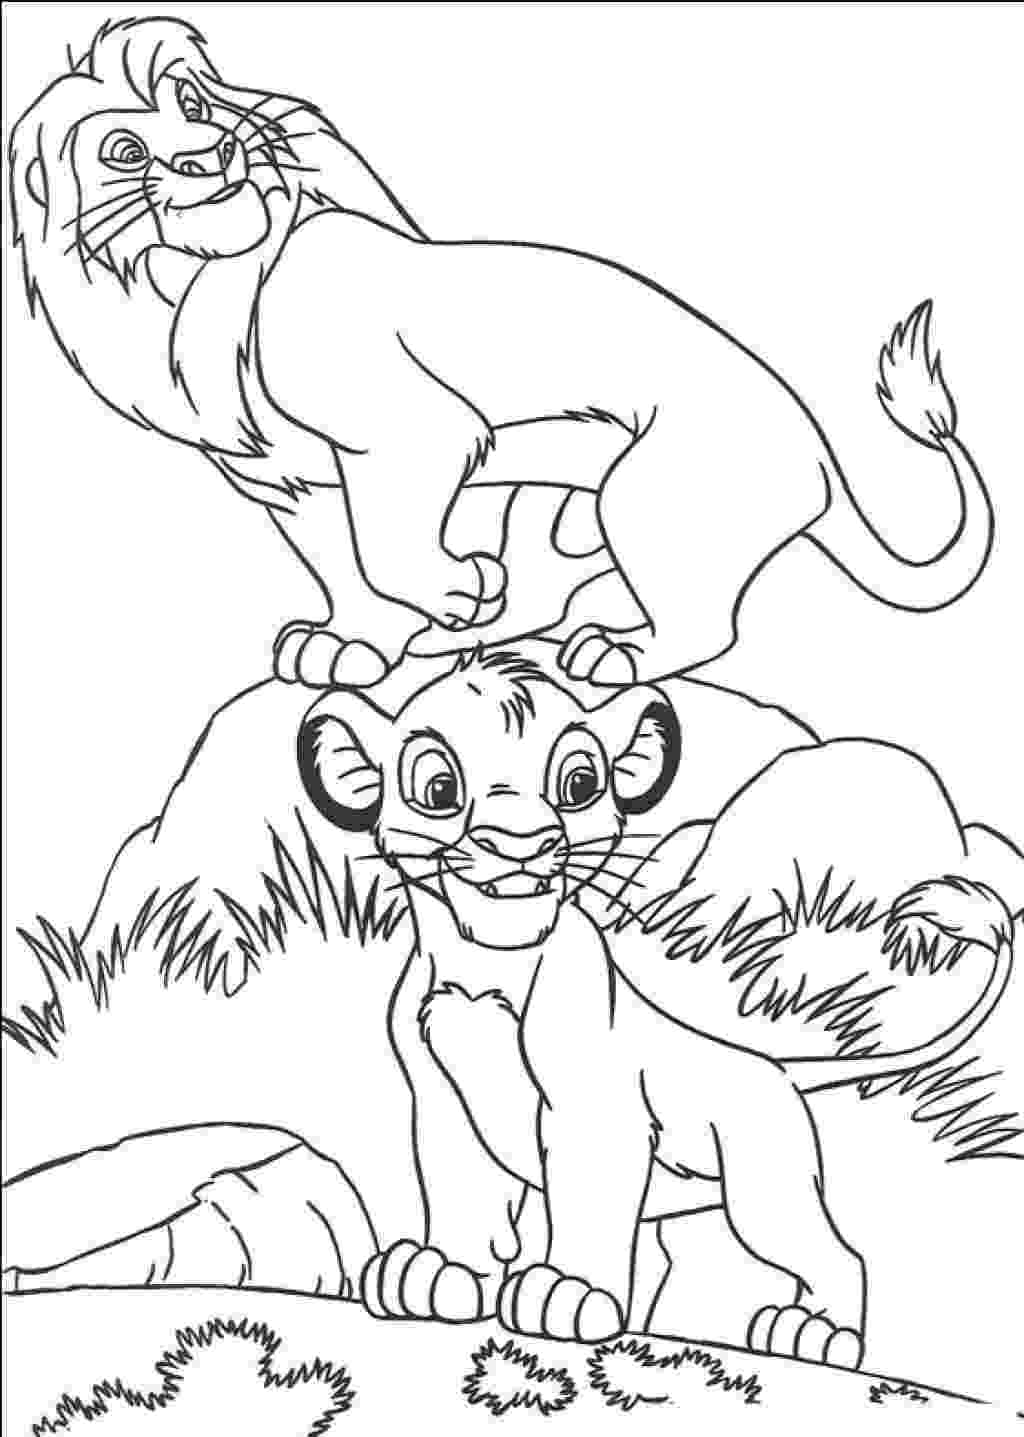 free printable coloring pages for children free printable elsa coloring pages for kids best free pages children printable for coloring